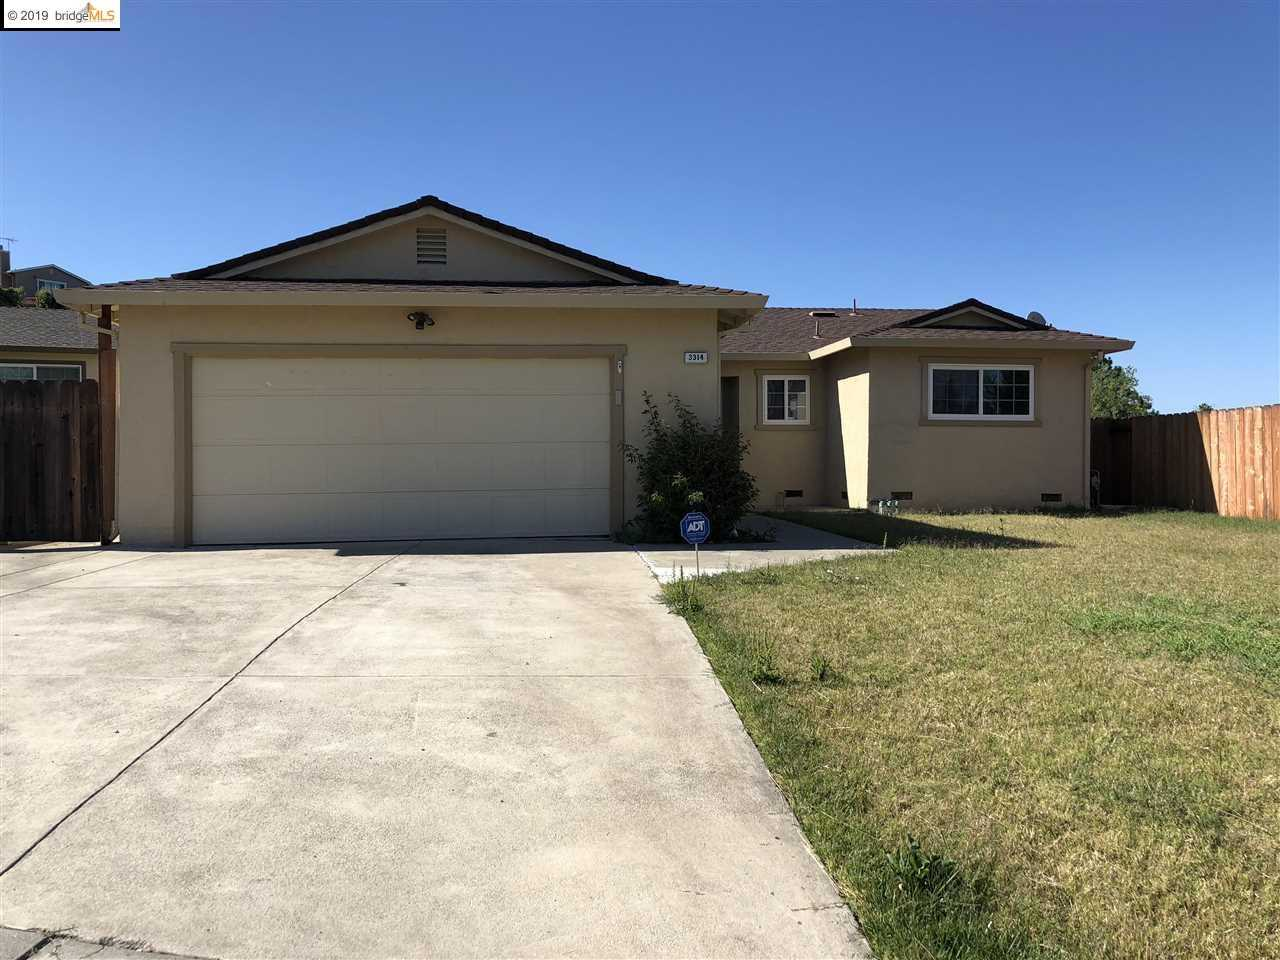 3314 Canim Ct. Antioch CA - Antioch Homes For Sale | California Delta Homes Photo 1